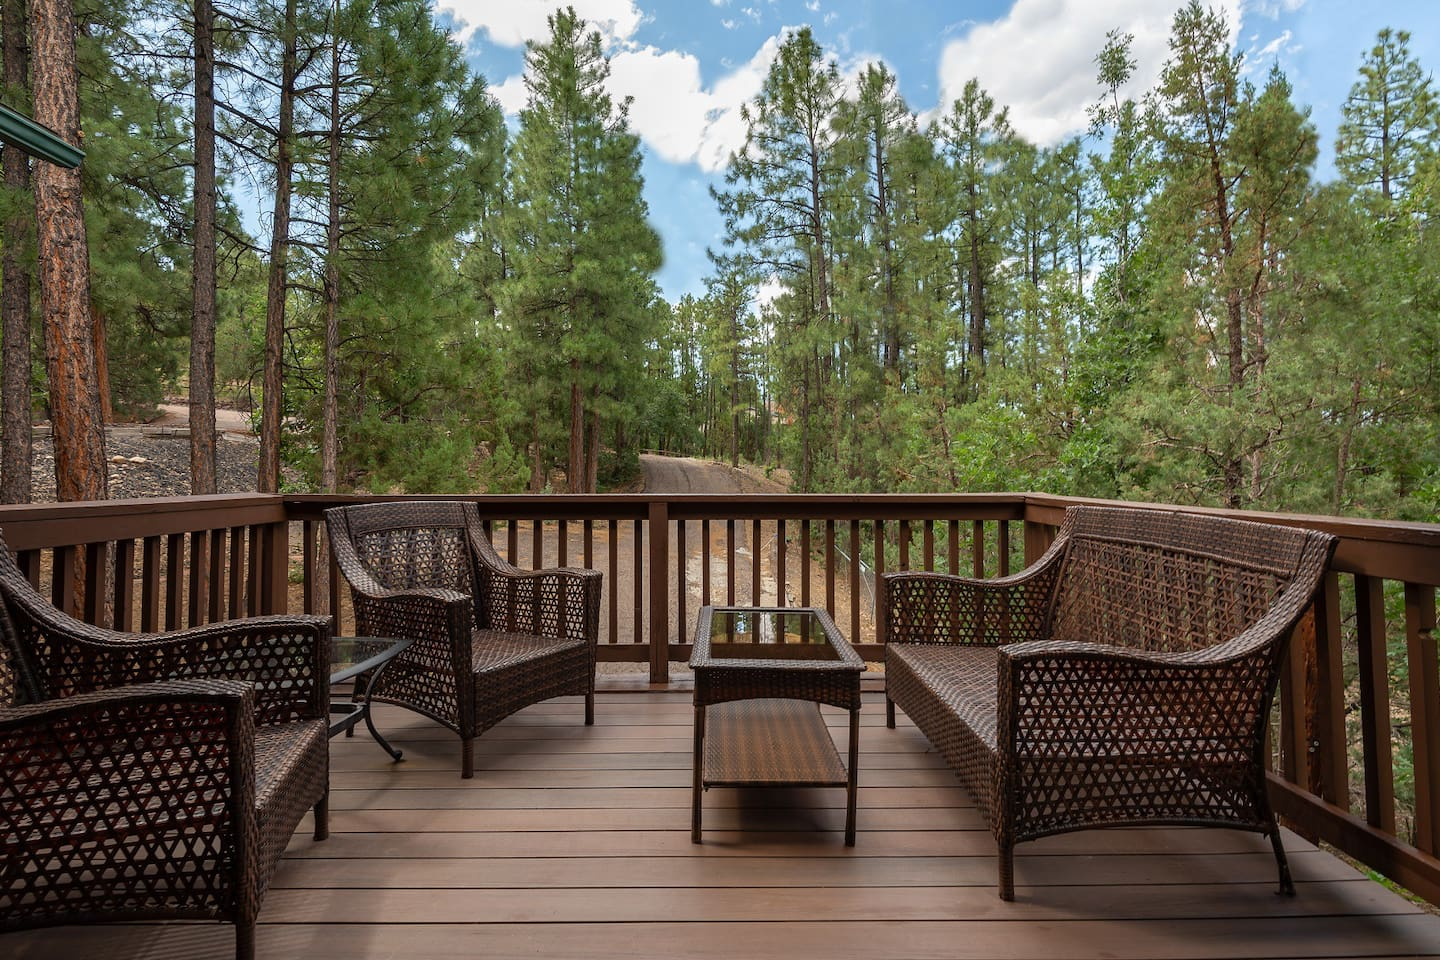 All year long the porch offers beautiful views and the enticing smell of pine trees.